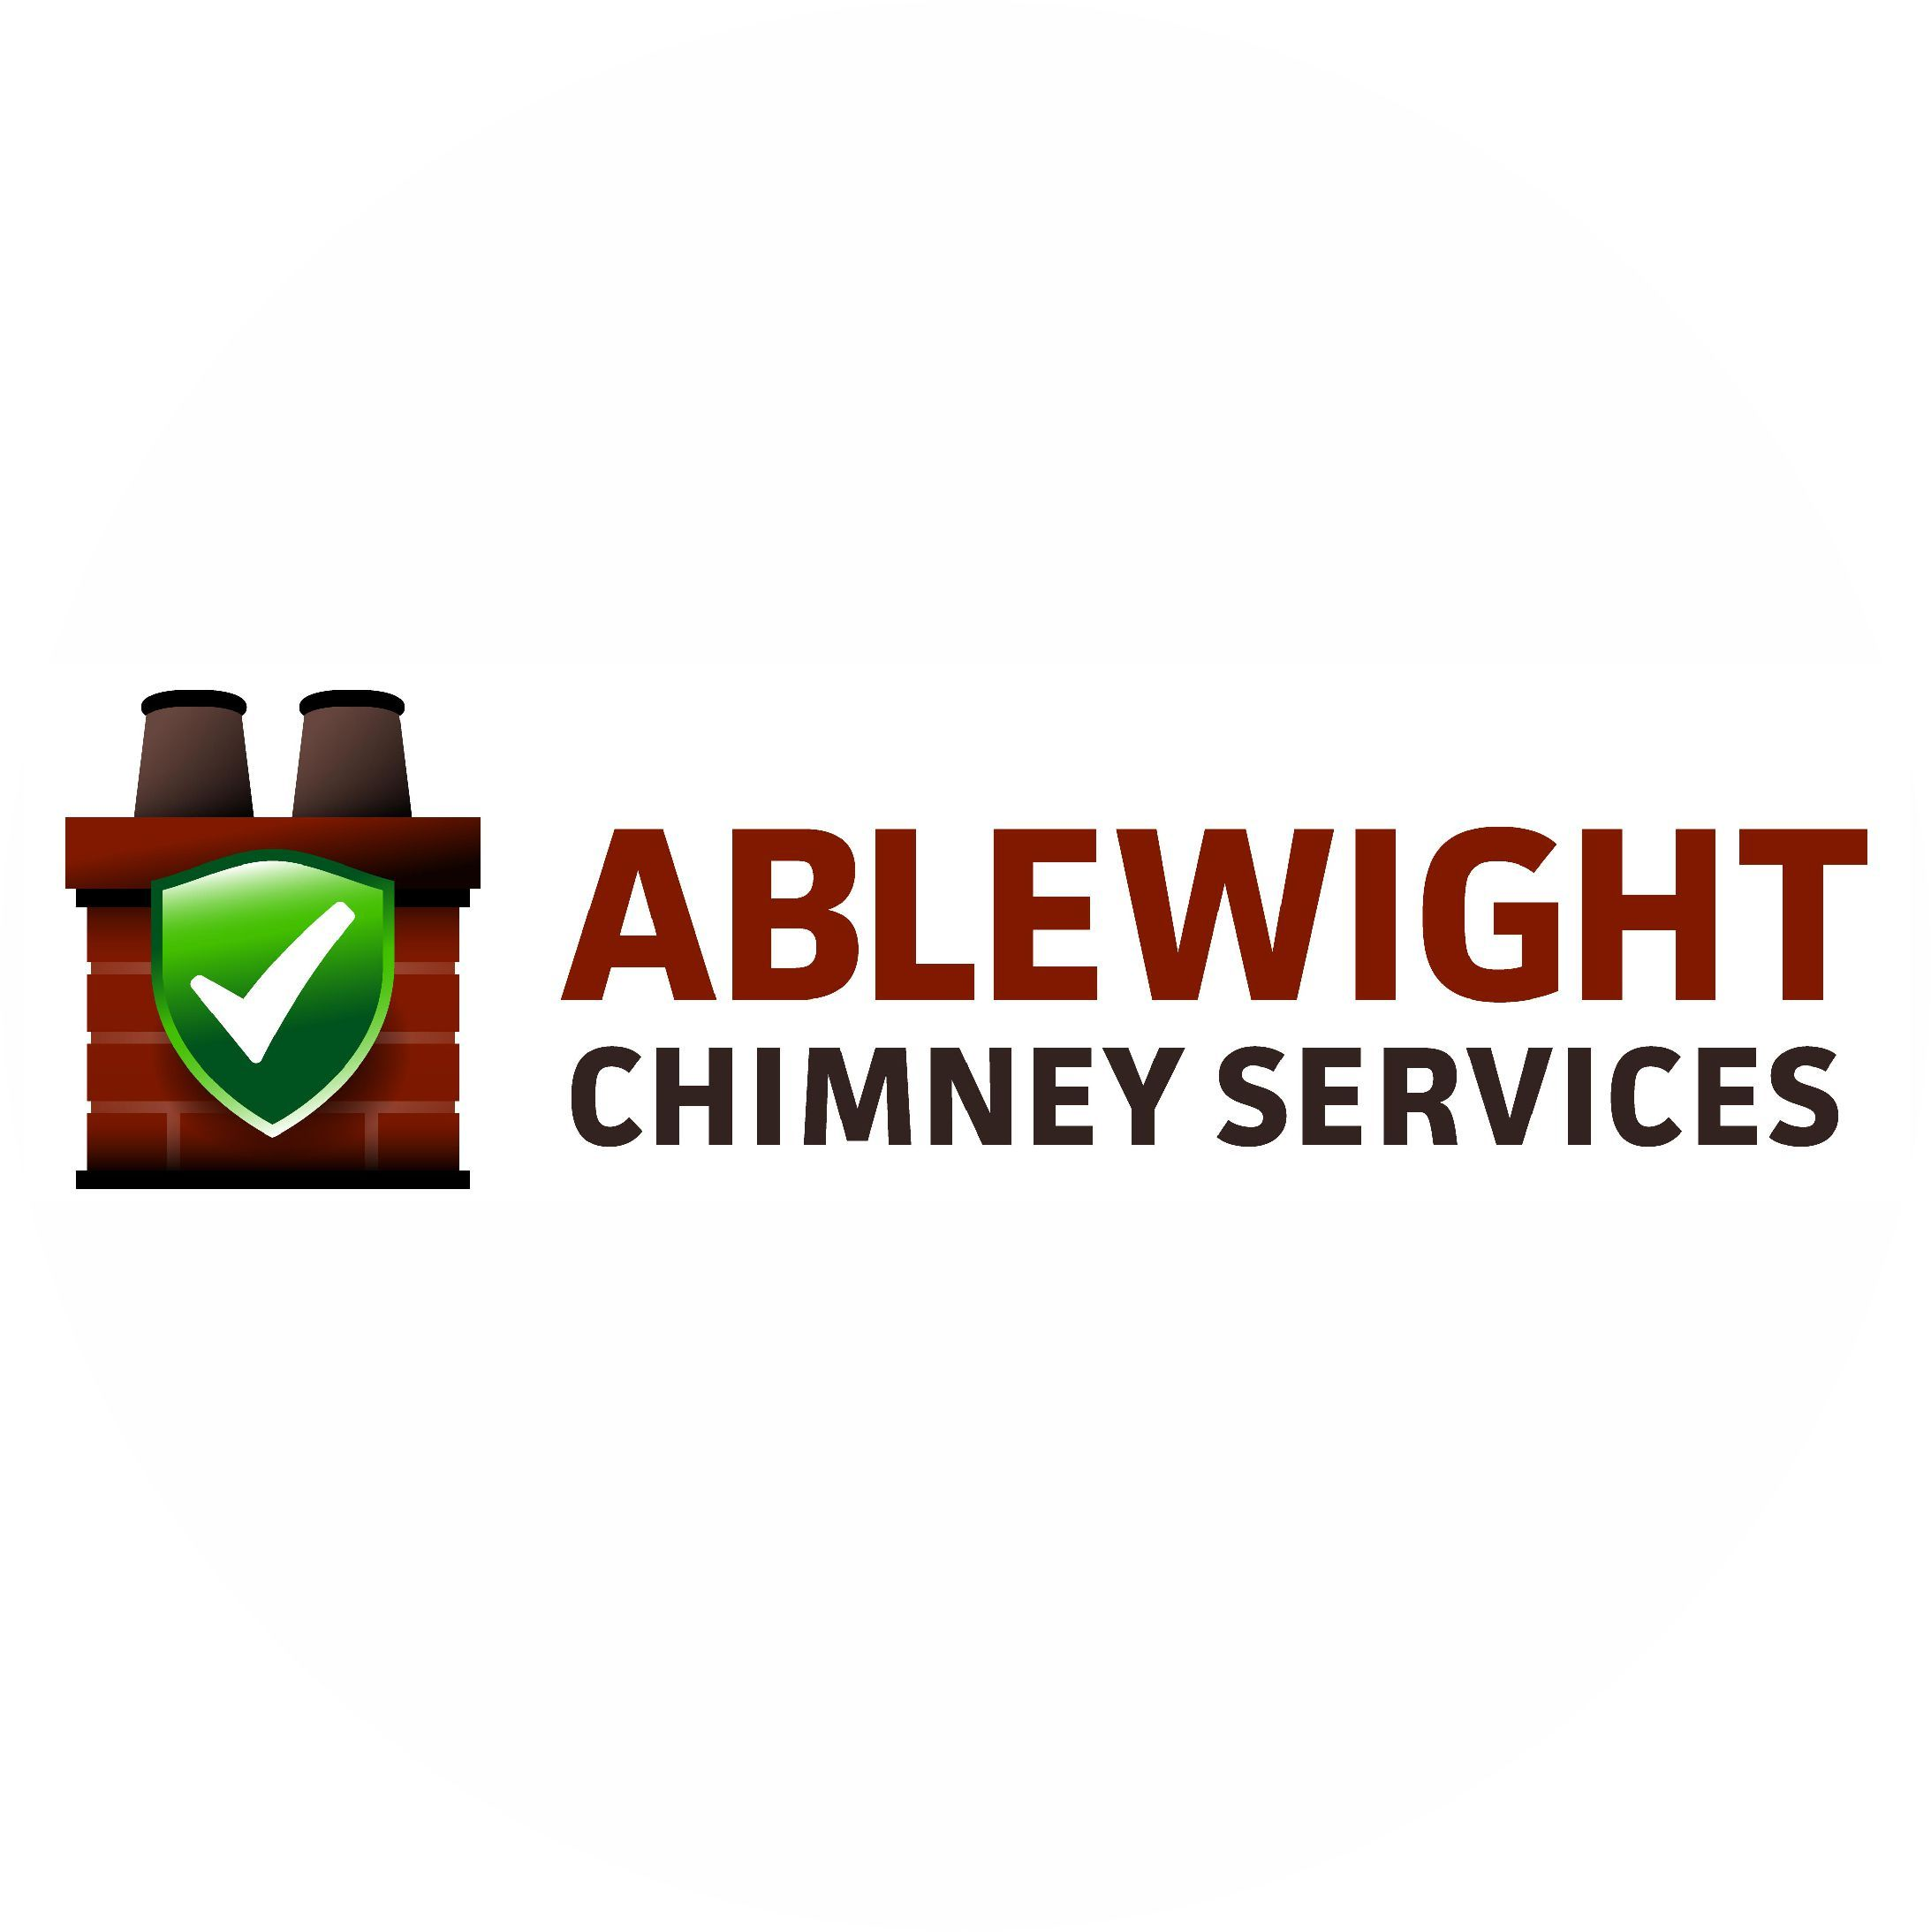 Lisa Wight- Ablewight Chimney Services